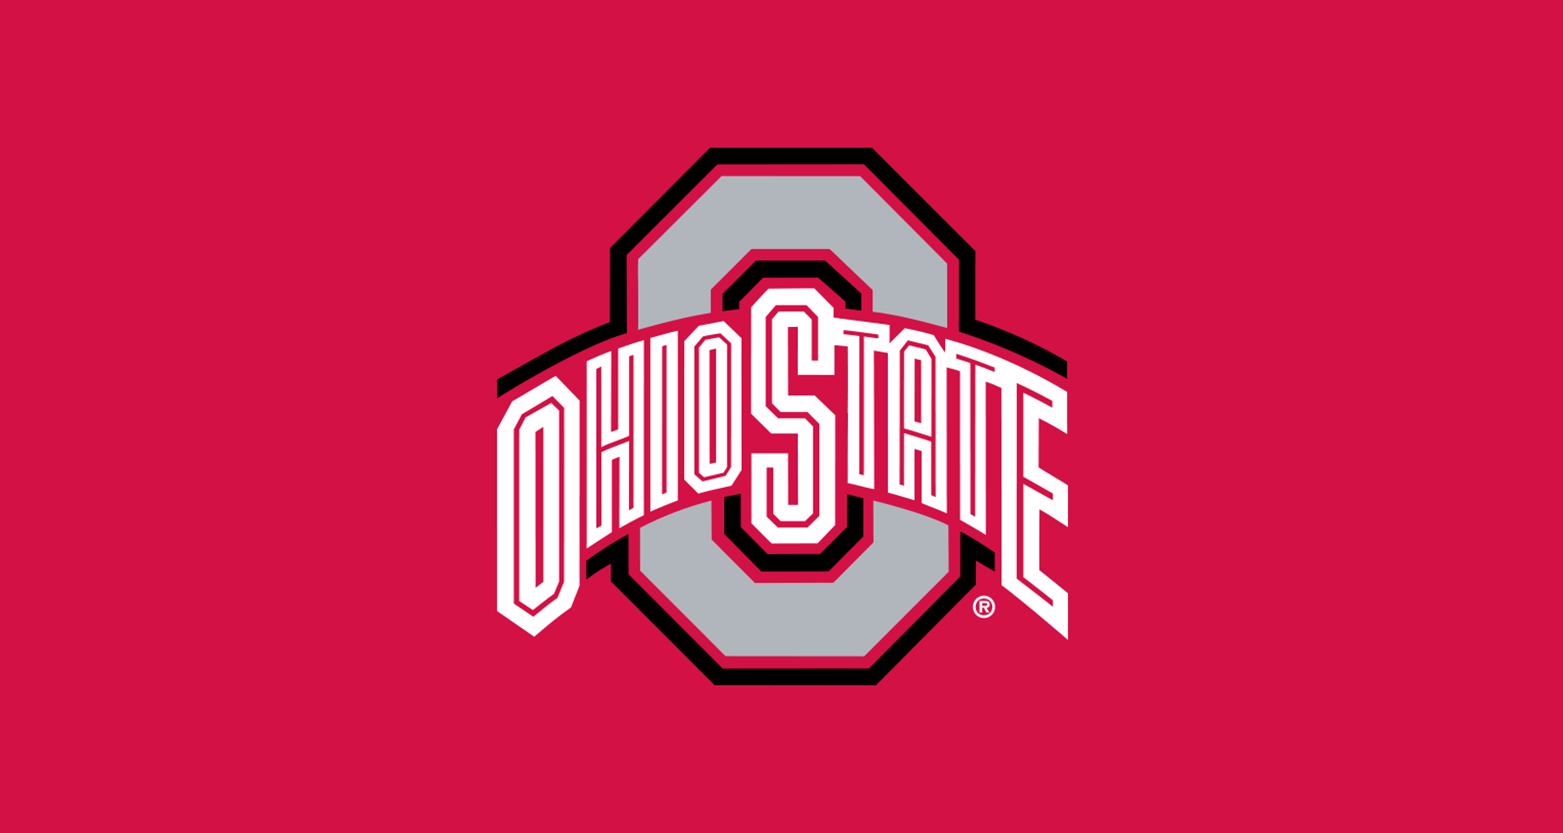 Designs Mob Ohio State University